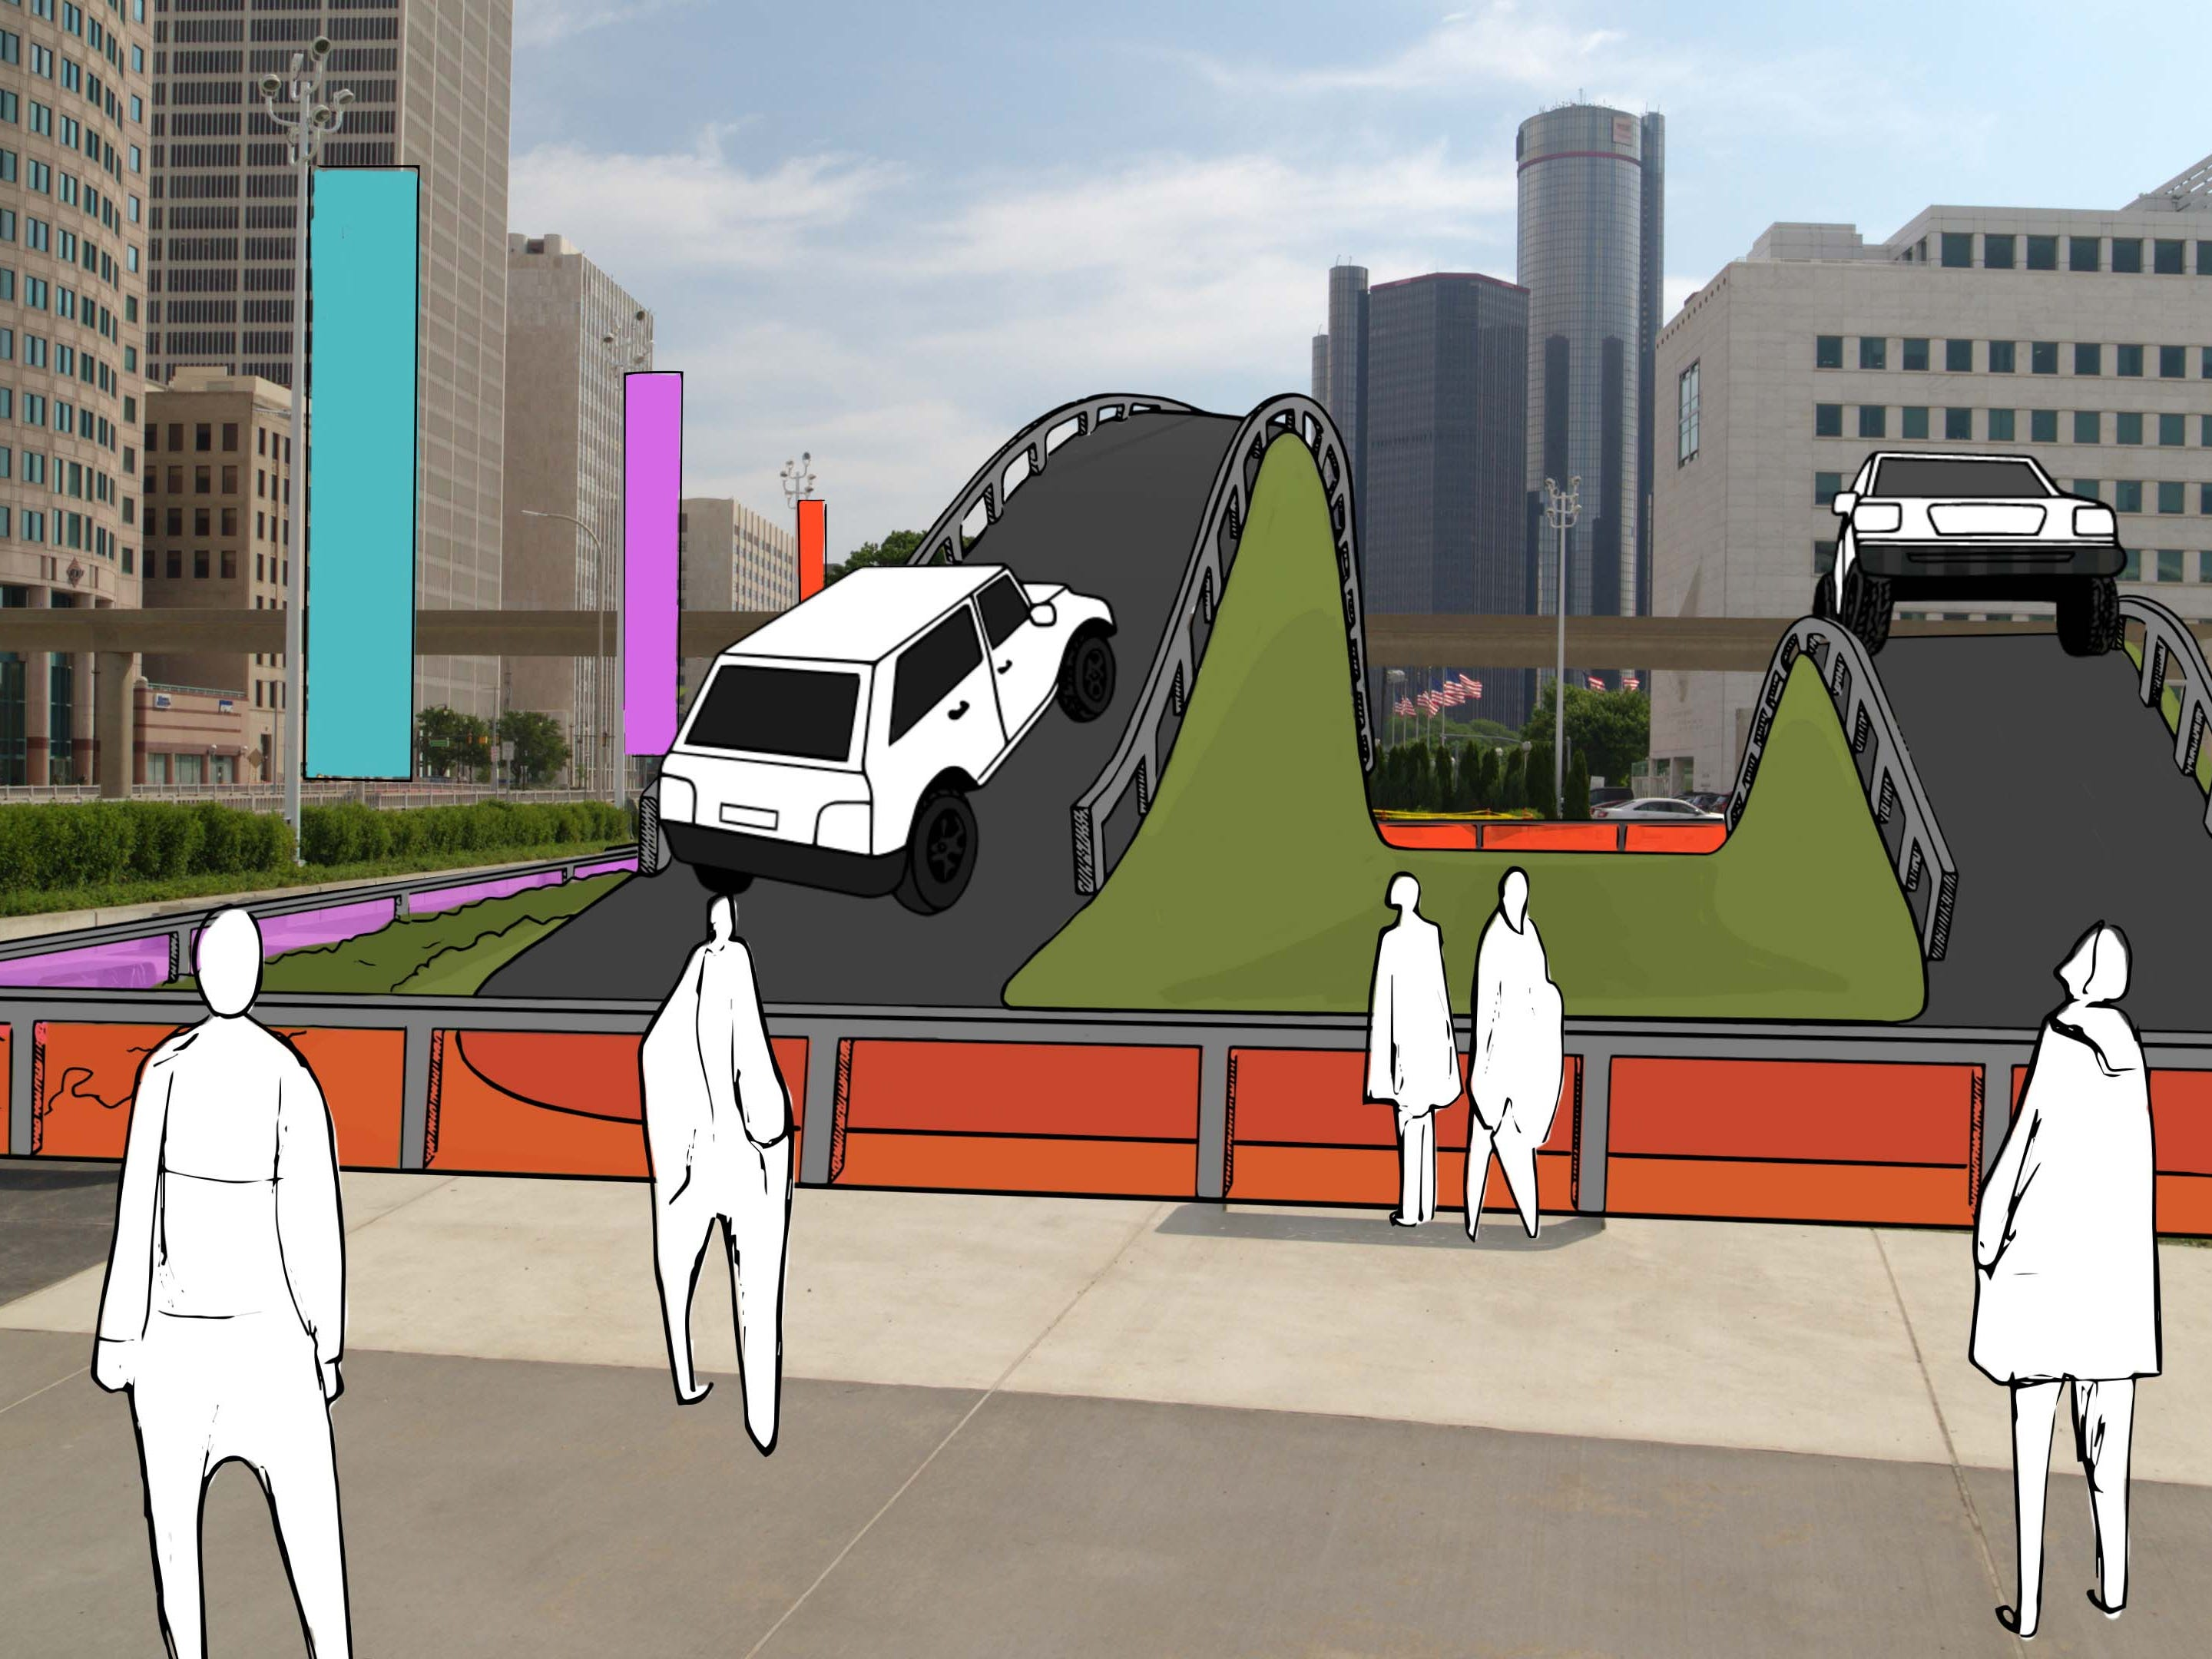 The 2020 Detroit Auto Show will feature experiential displays where attendees can test new cars along the Detroit waterfront.